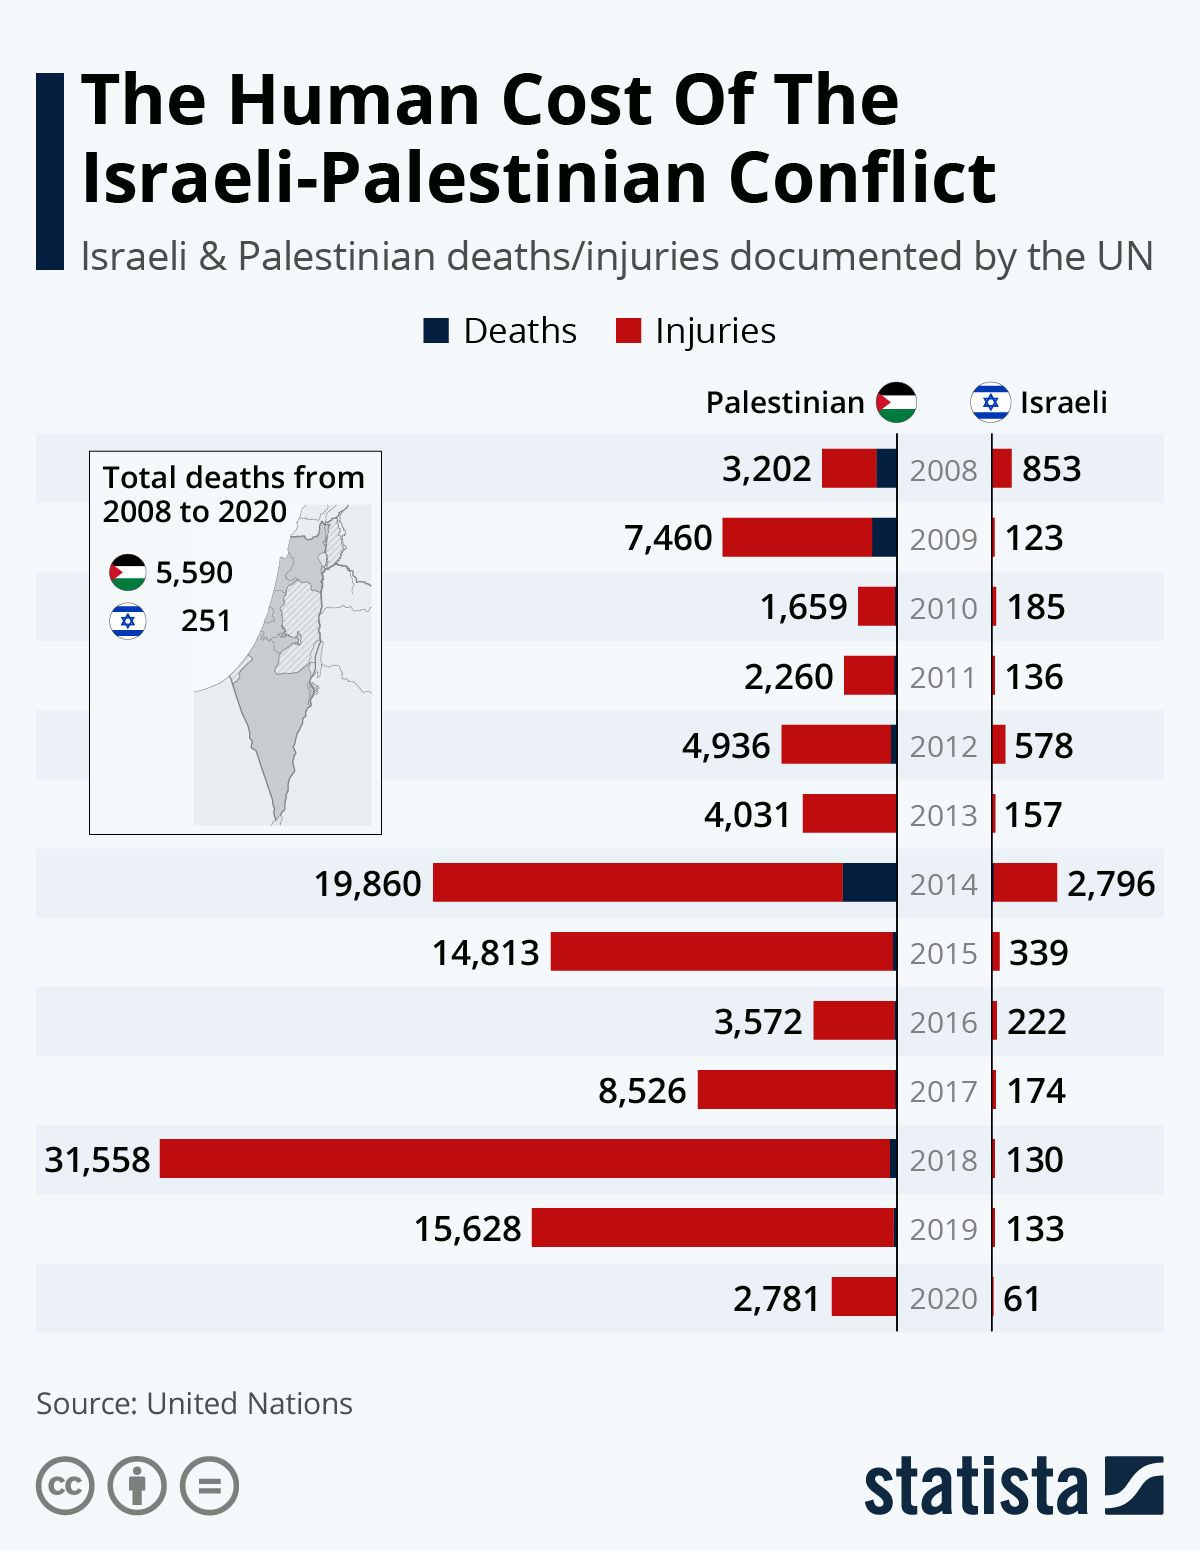 This chart shows the number of Palestinian and Israeli death and injuries in Gaza and the West Bank reported by the UN for 2008 - 2020. In 2020 2,781 Palestinians were hurt/injured; 61 Israeli's were hurt/injured; In 2019: 15,628 Palestinians were hurt/injured; 133 Israeli's were hurt/injured; In 2018: 31,558 Palestinians were hurt/injured; 130 Israeli's were hurt/injured. From 2008 - 2020 5,590 Palestinian's were killed; 251 Israeli's were killed.